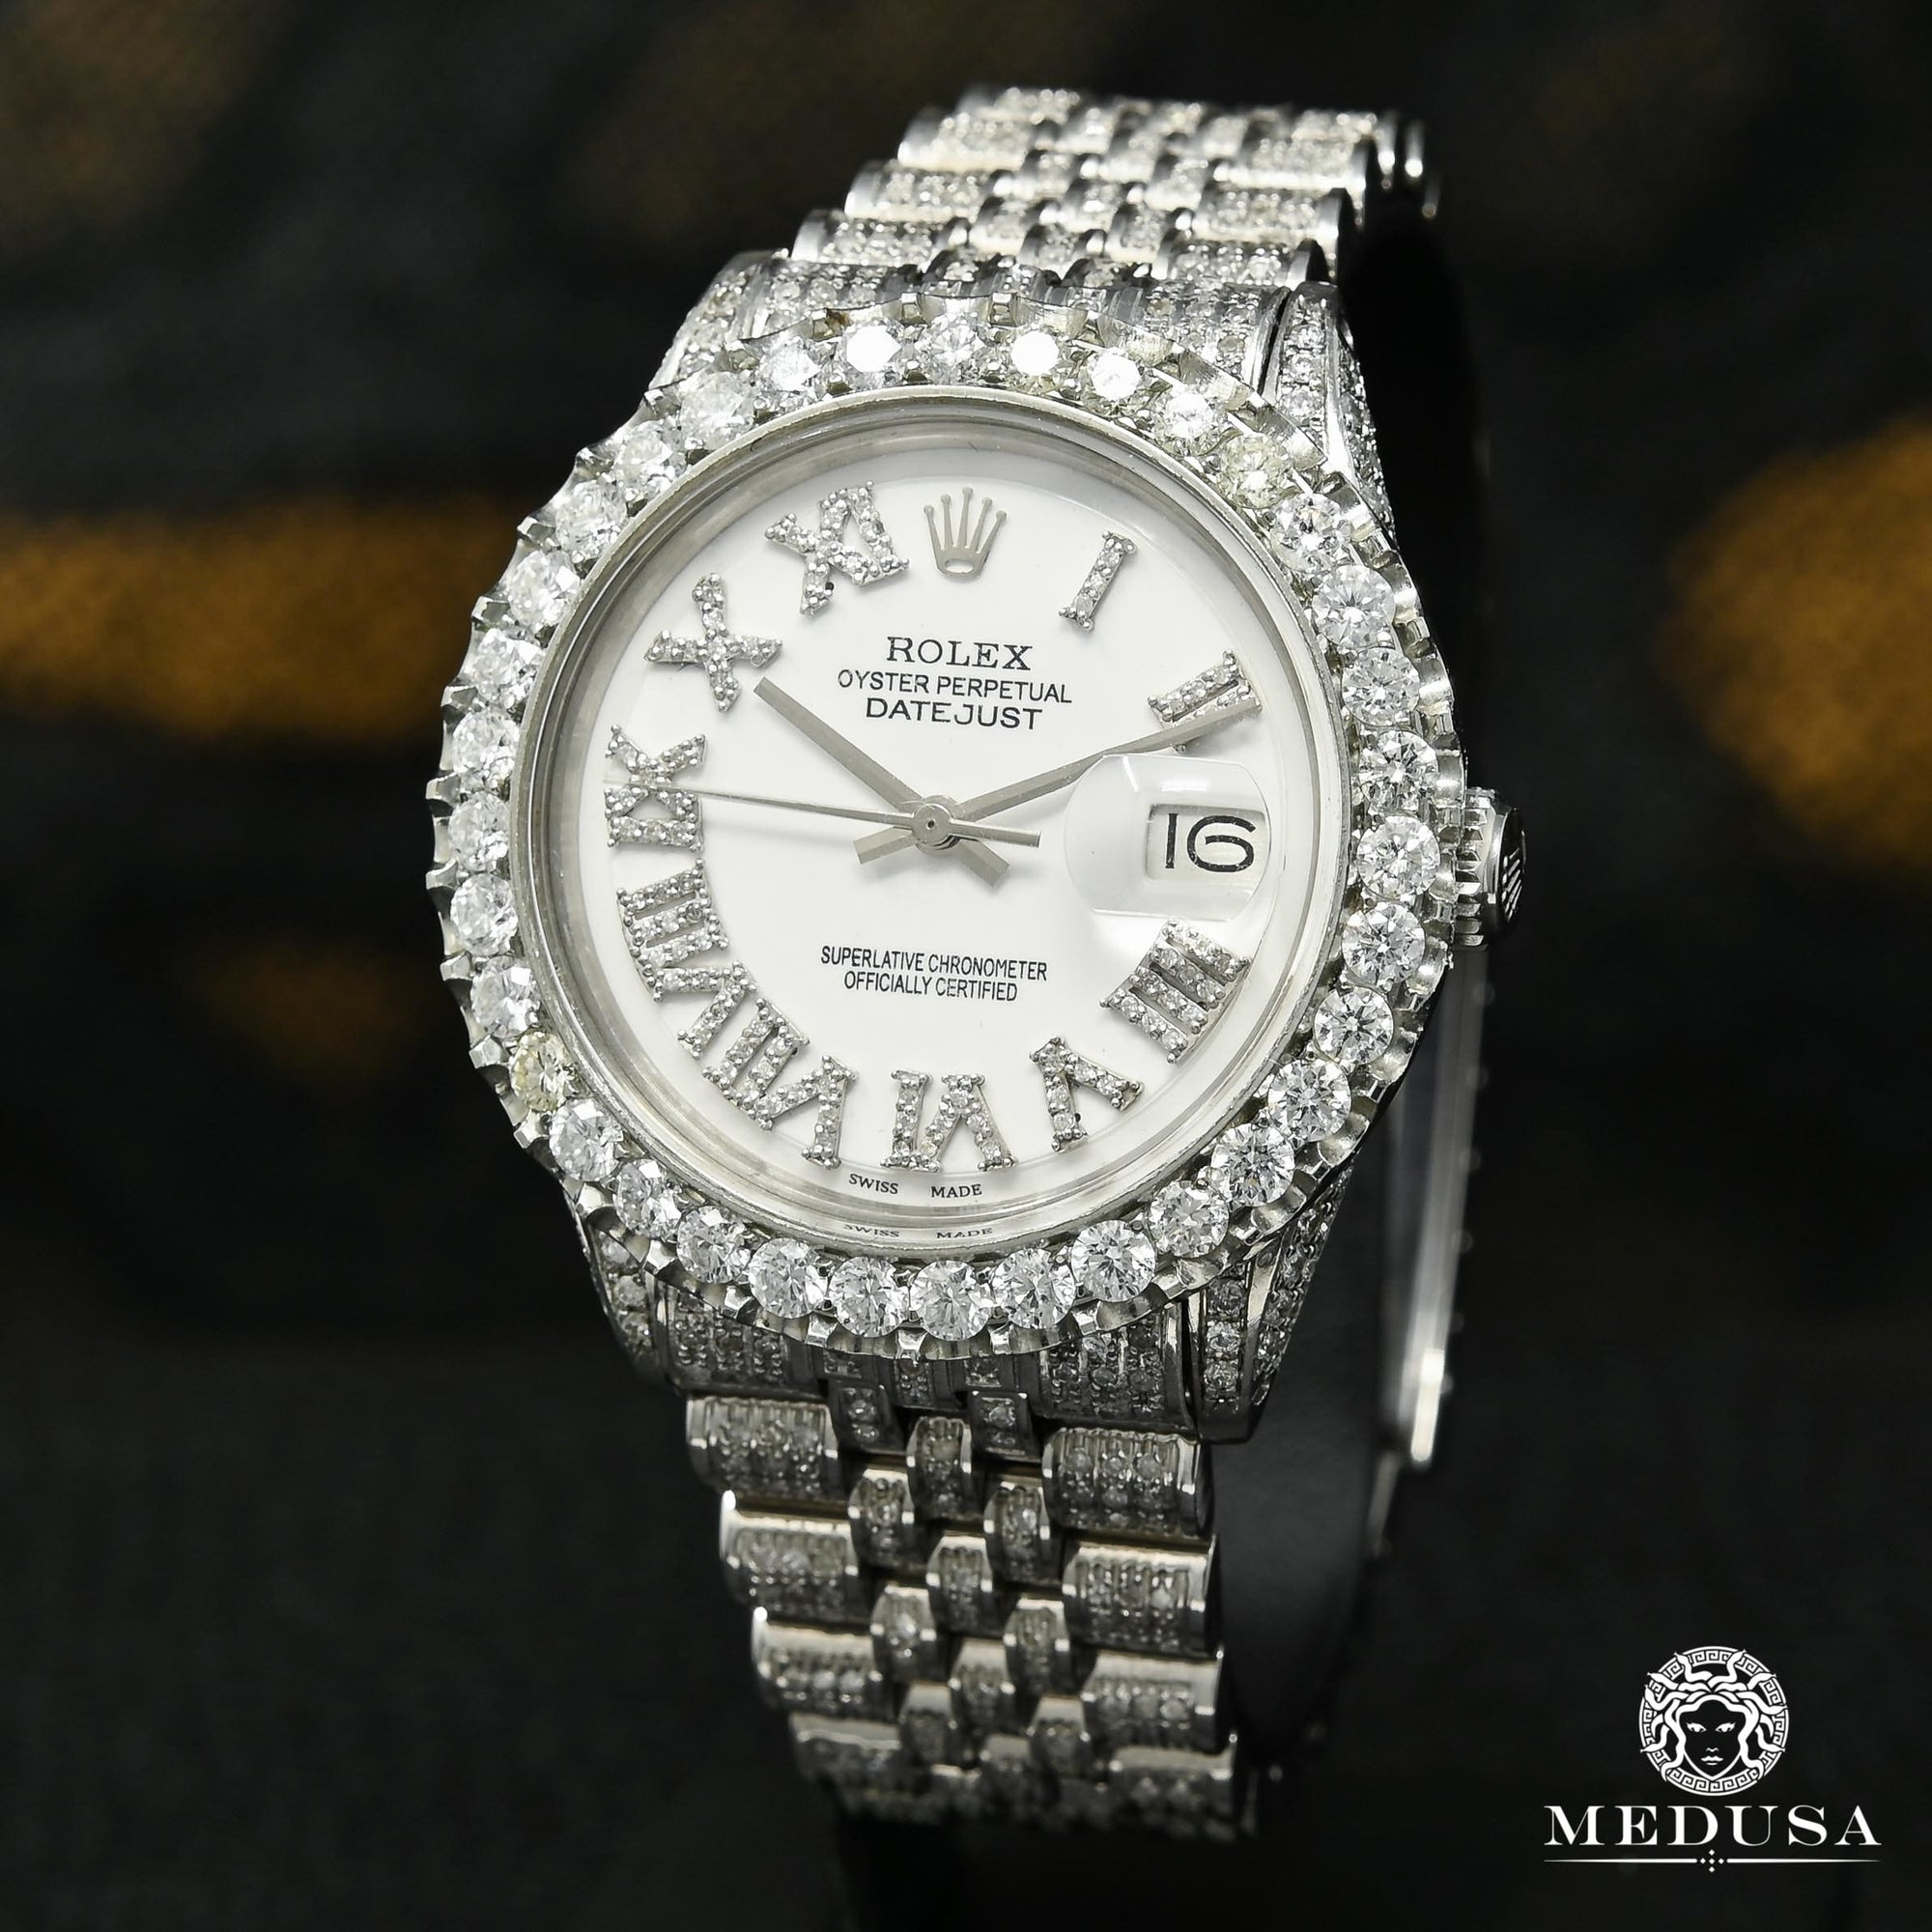 Rolex Datejust 36mm - White Iced Out